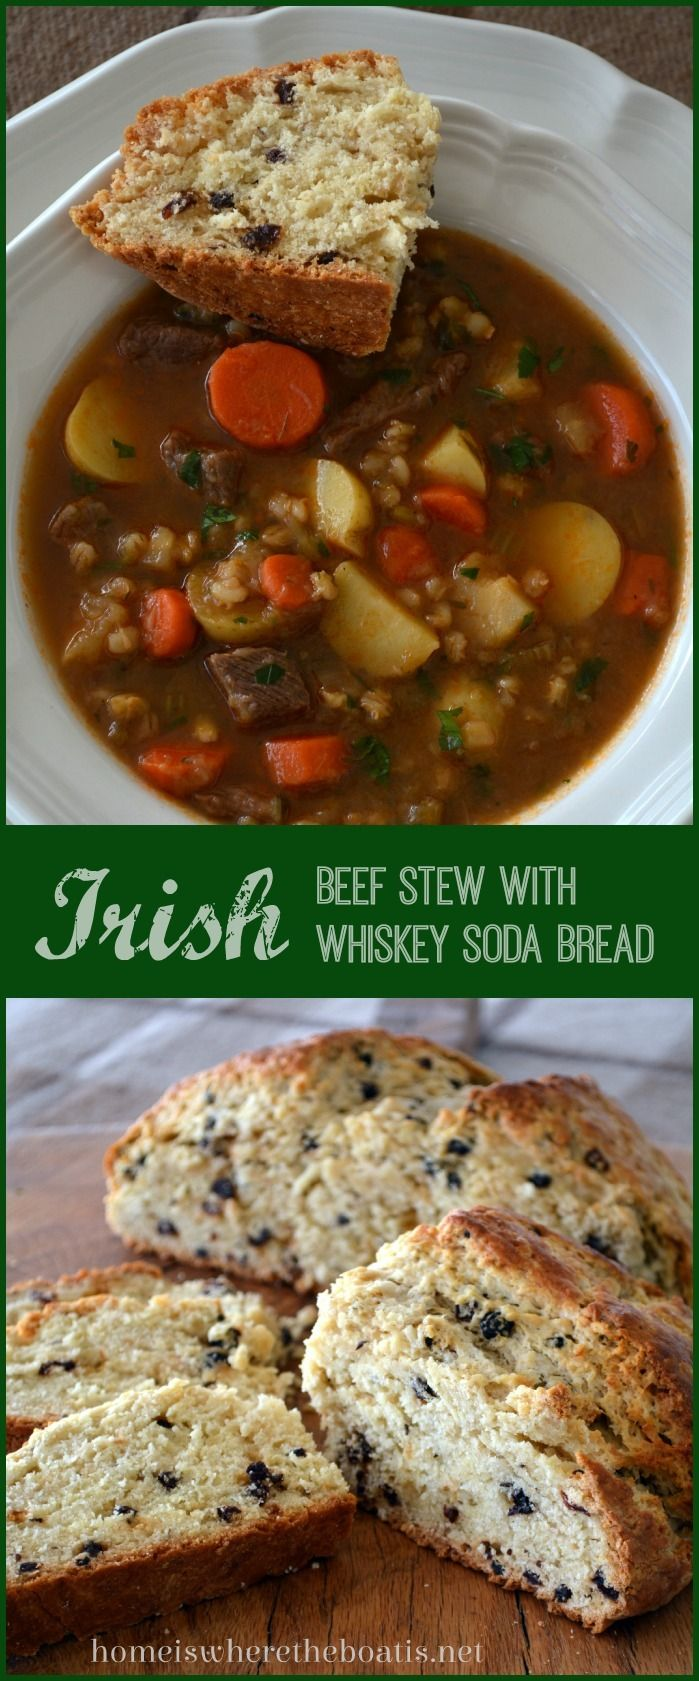 It's said that everyone is a little bit Irish on St. Patrick's Day. With St. Patrick's Day a week away, I'm sharing some love of the Irish witha round-up of recipes from …